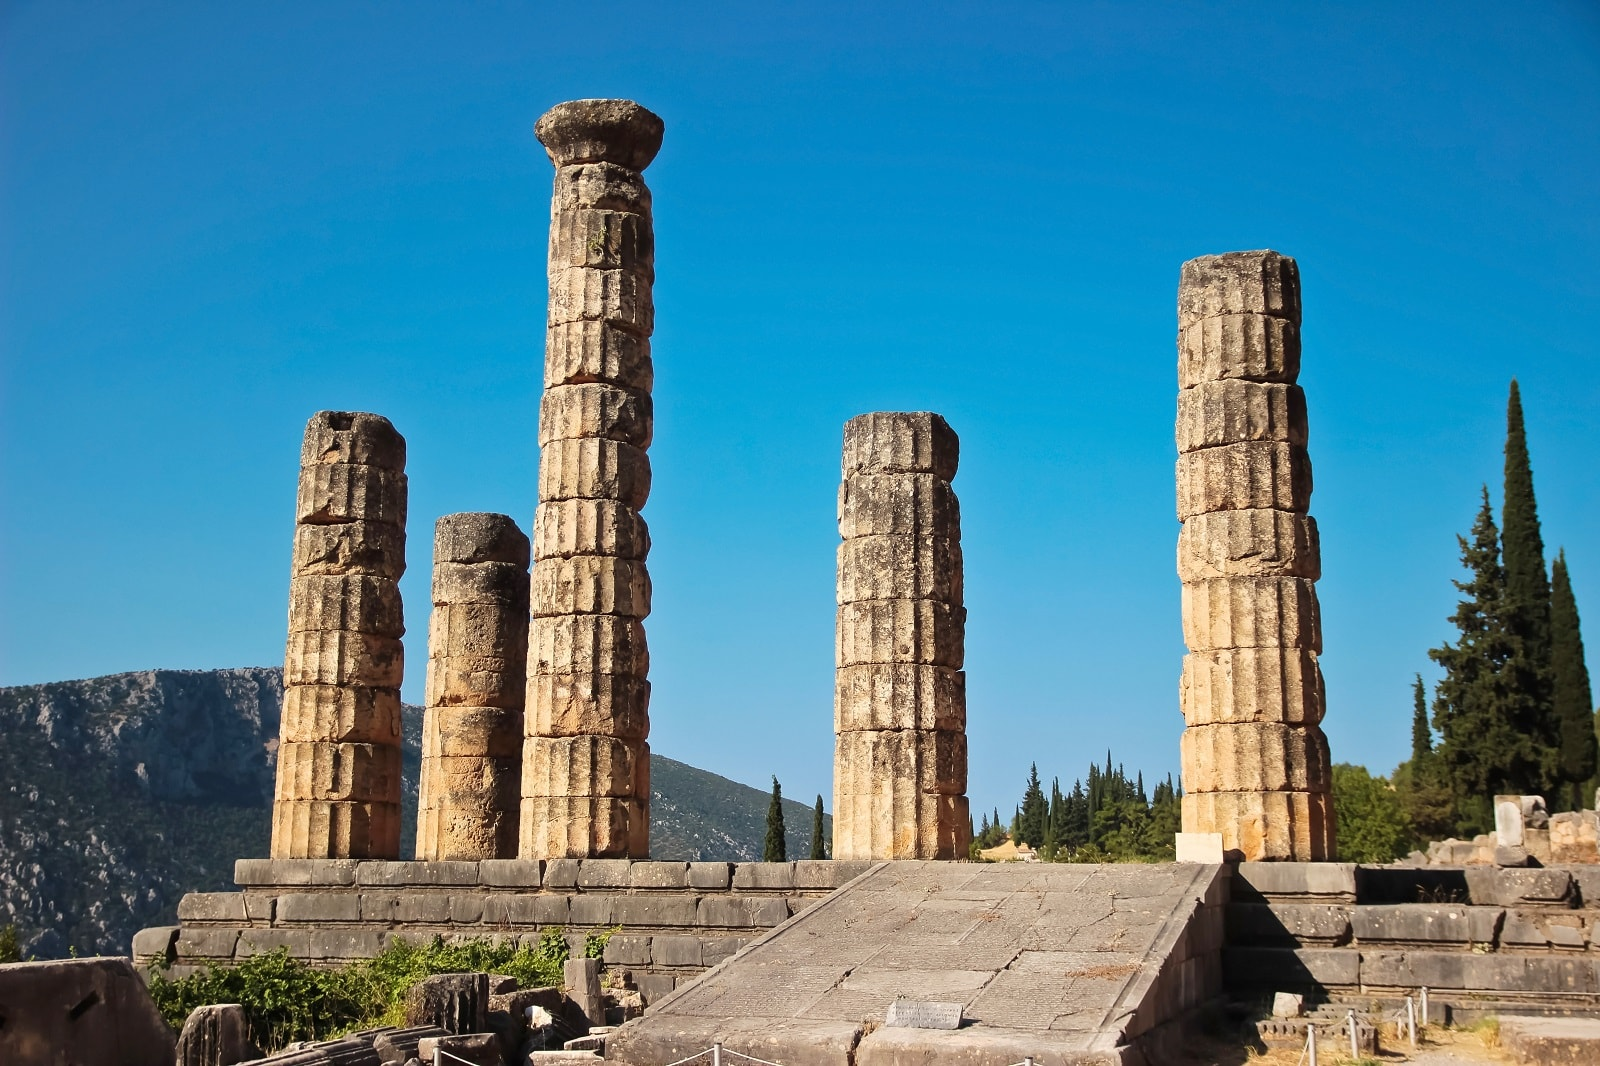 Family friendly Tour to Delphi Archaeological Site kidslovegreece temple of Apollo oracle Pytheia